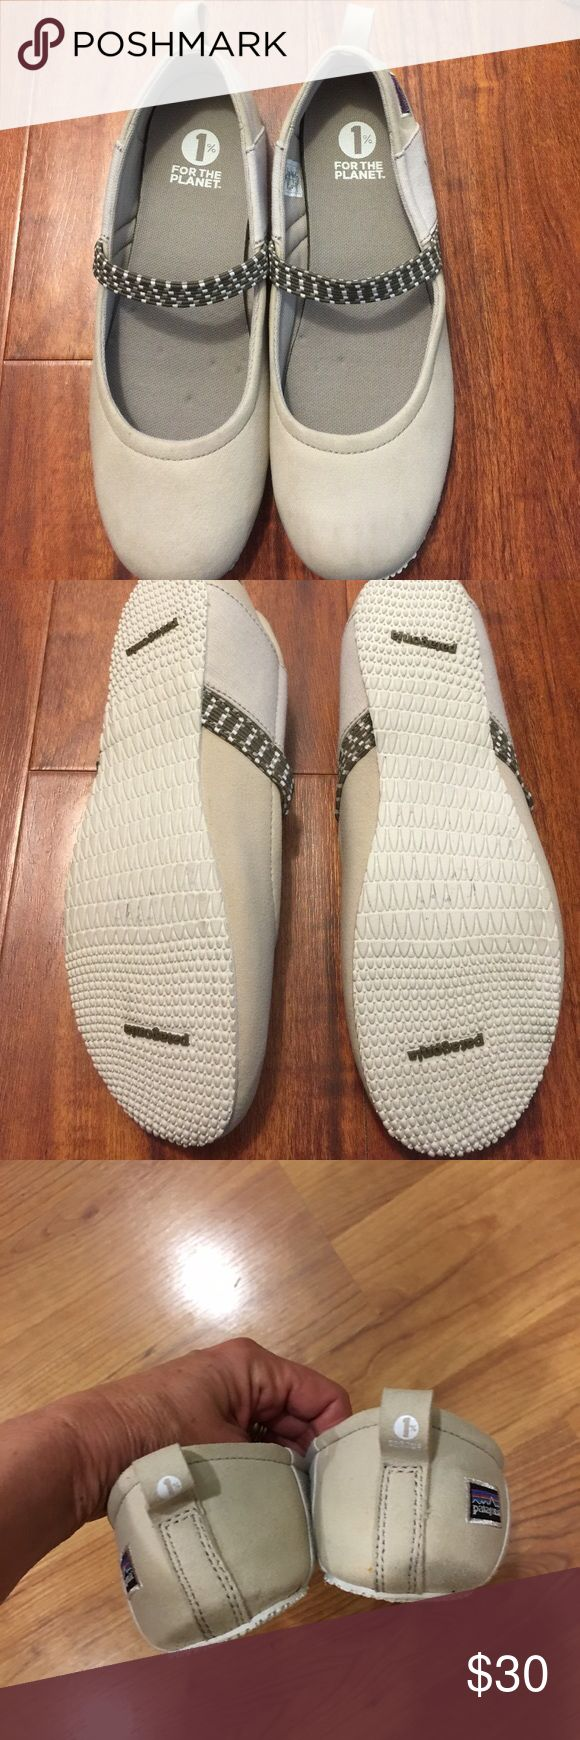 PATAGONIA SHOES SIZE 10 SIZE 10 PATAGONIA FLAT SLIPPERS. CREAM WITH ELASTIC BAND ON TOP FEW STAINS ON SIDES AS SHOWN IN PICTURES. SUPER COMPHY. Patagonia Shoes Flats & Loafers